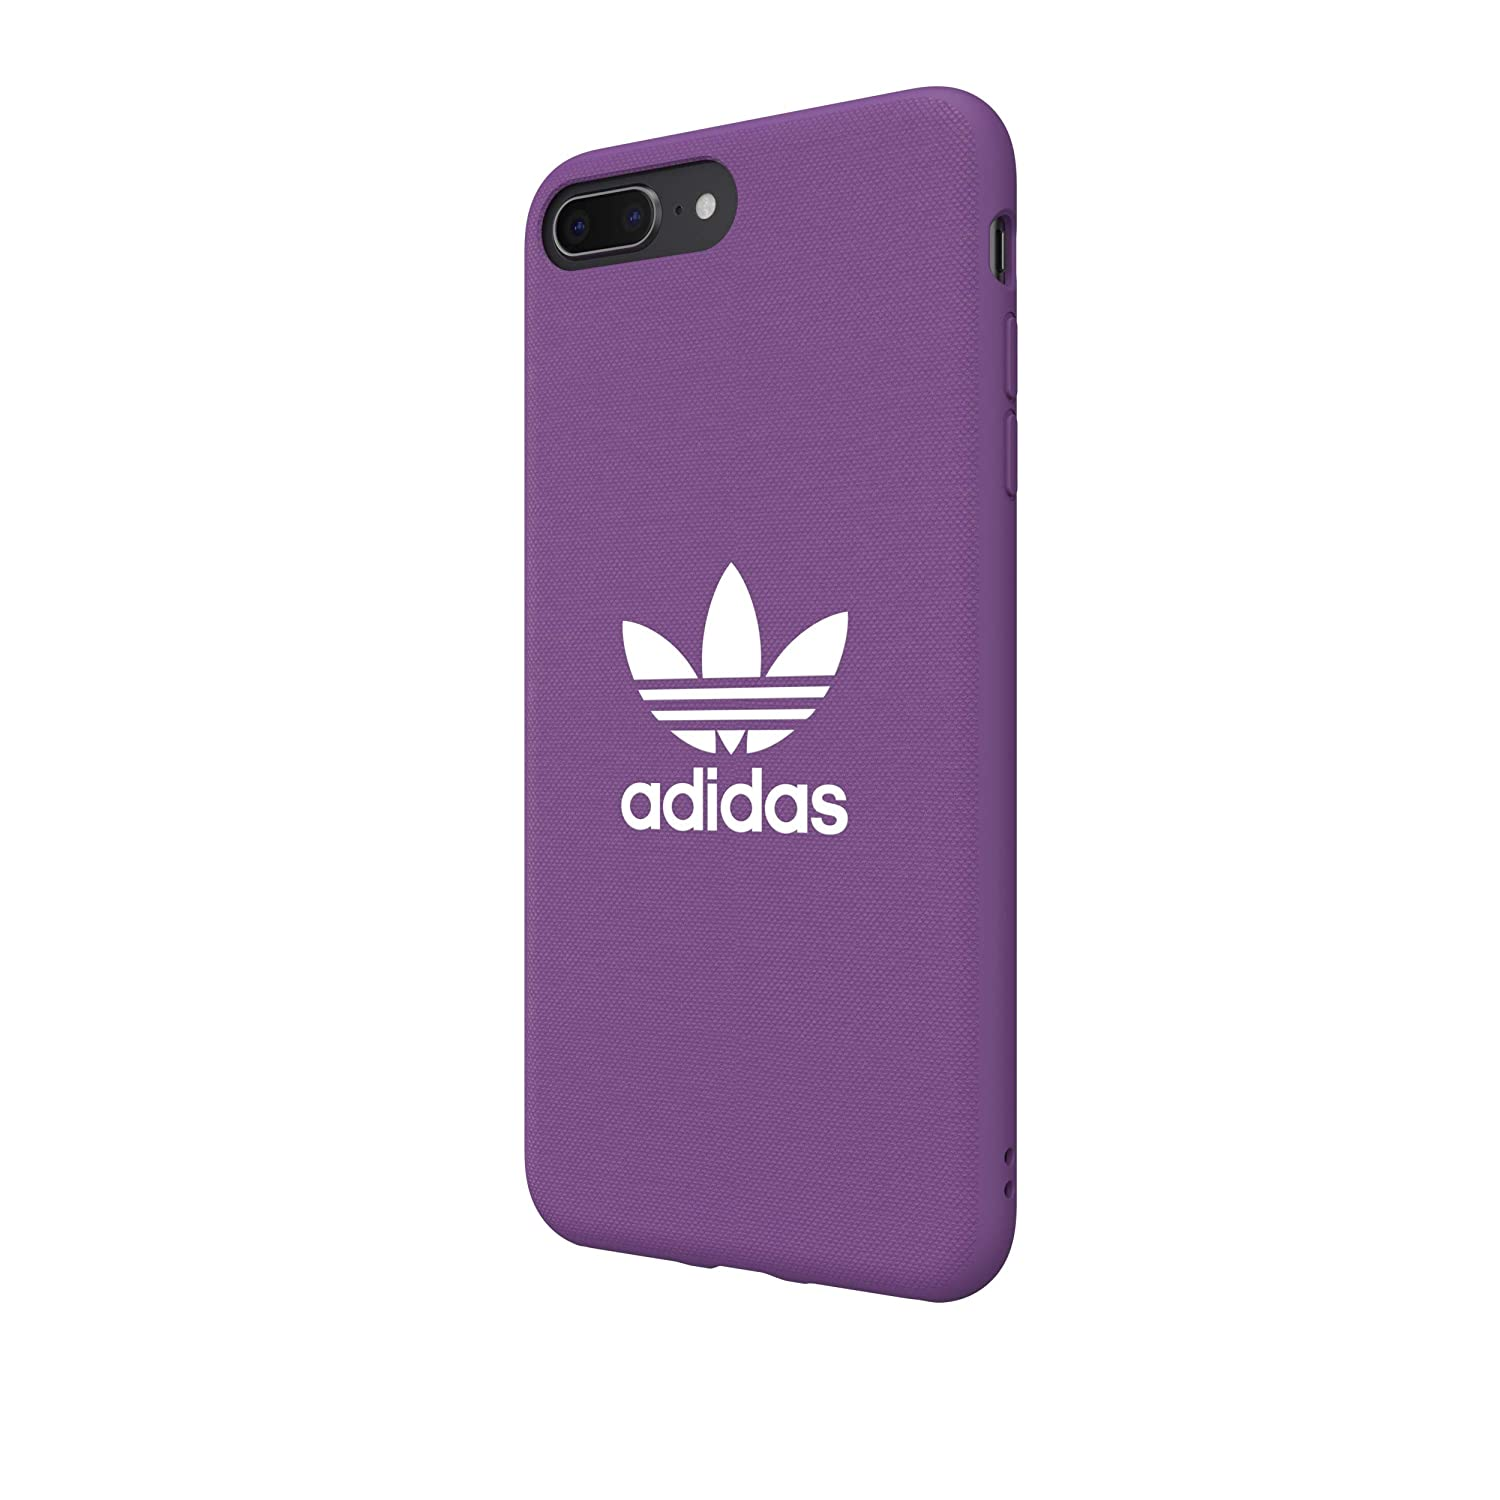 Amazon.com: adidas Originals iPhone 6/6S/7/8 Plus Case ...